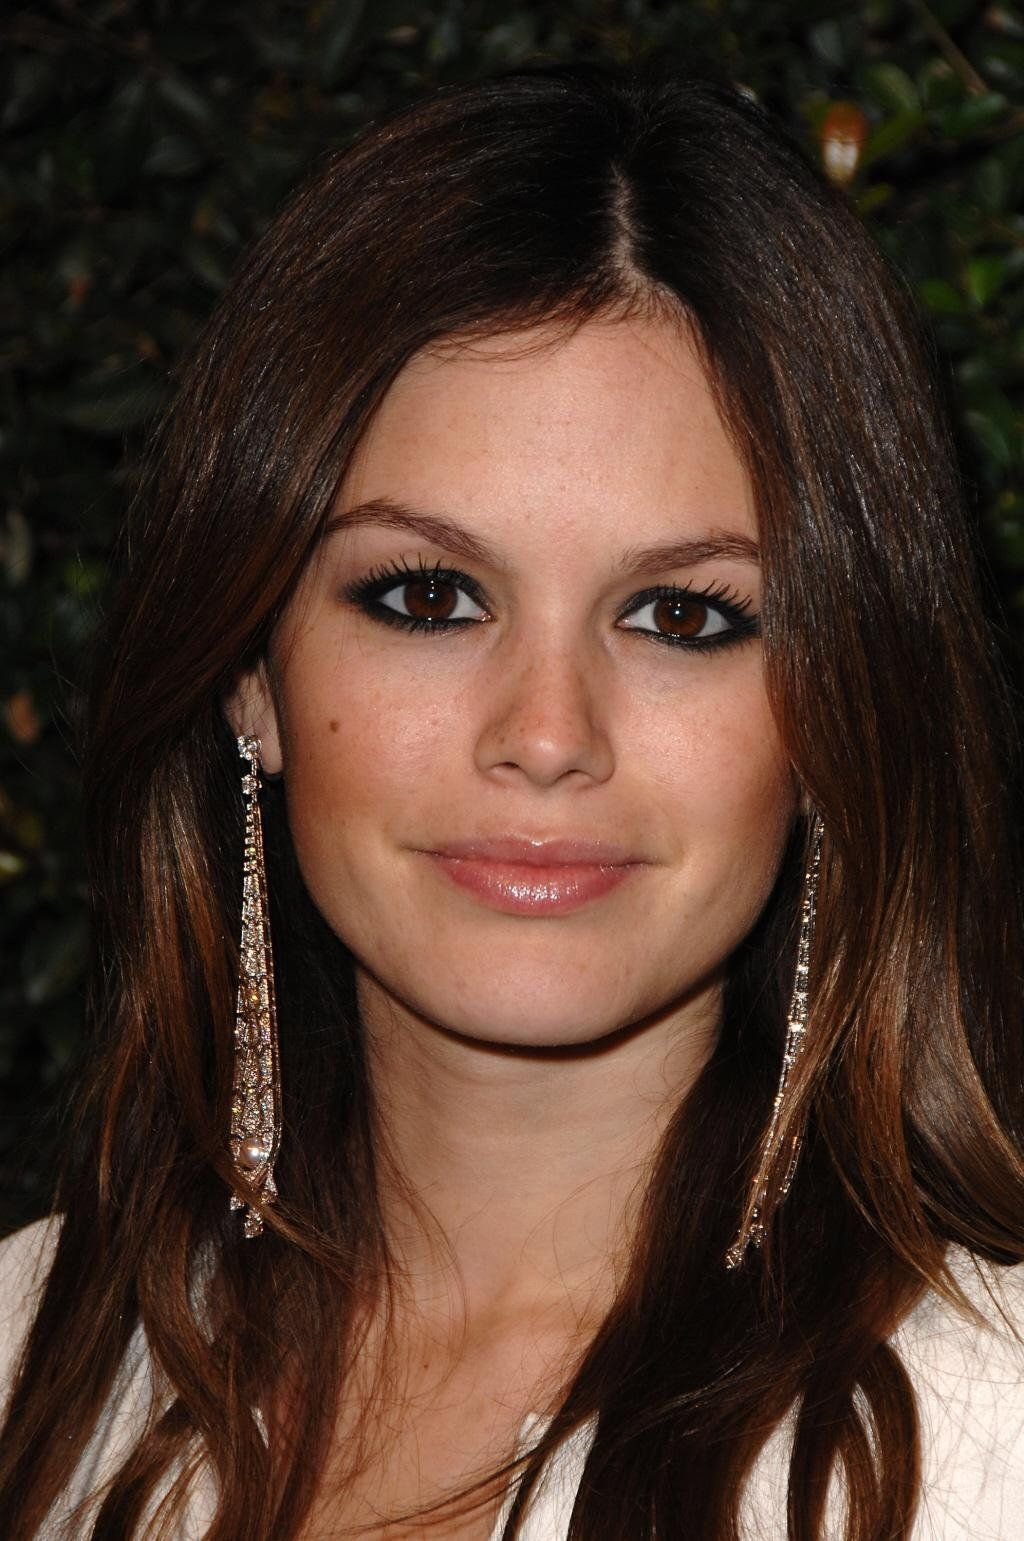 Hairbeauty and Beauty inspired by rachel bilson forecasting to wear for summer in 2019